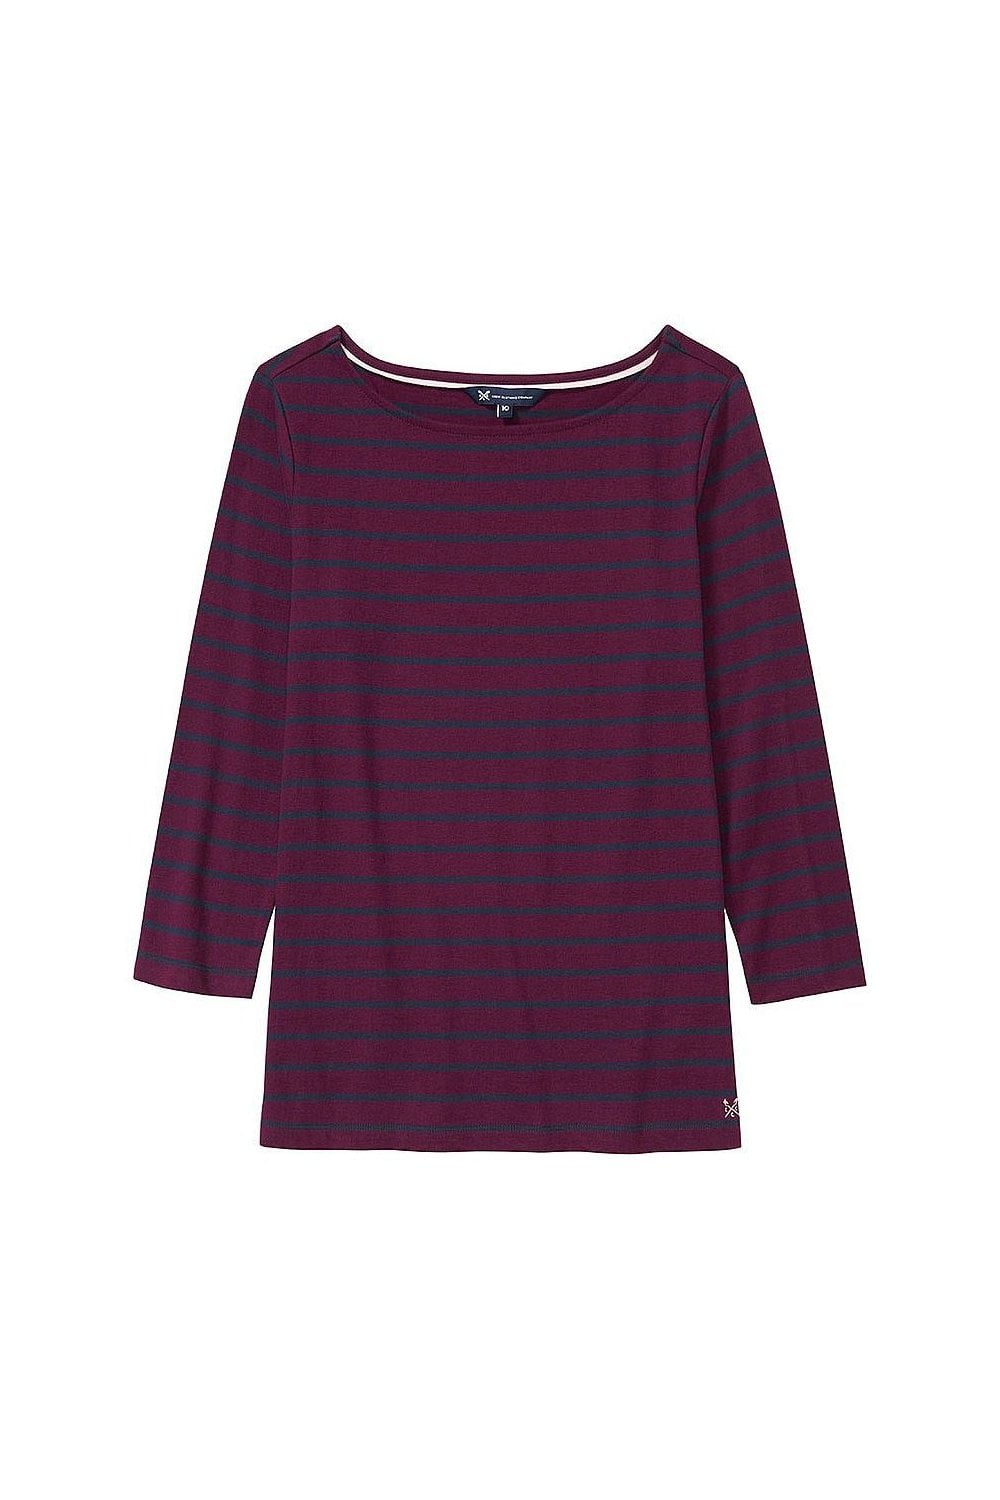 dd6046d94e84 Crew Clothing Womens Essential Breton Top - Aubergine/Navy - T ...